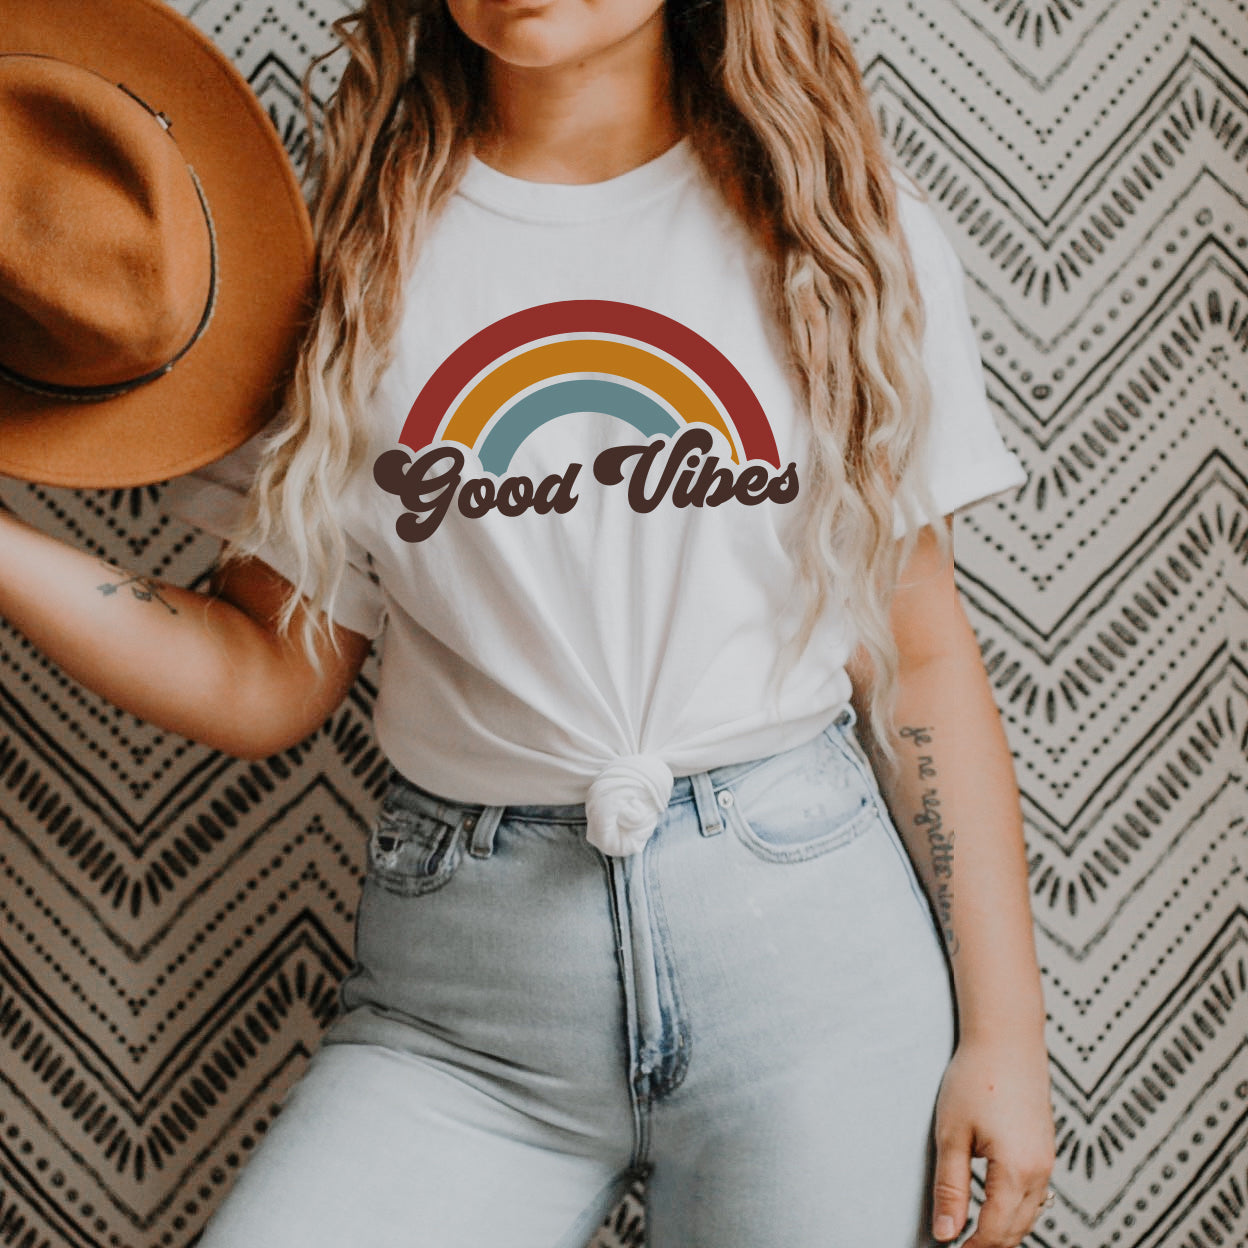 Good Vibes Shirt - Good Vibes Rainbow Shirt - 70s Style Retro Shirt Unisex SS